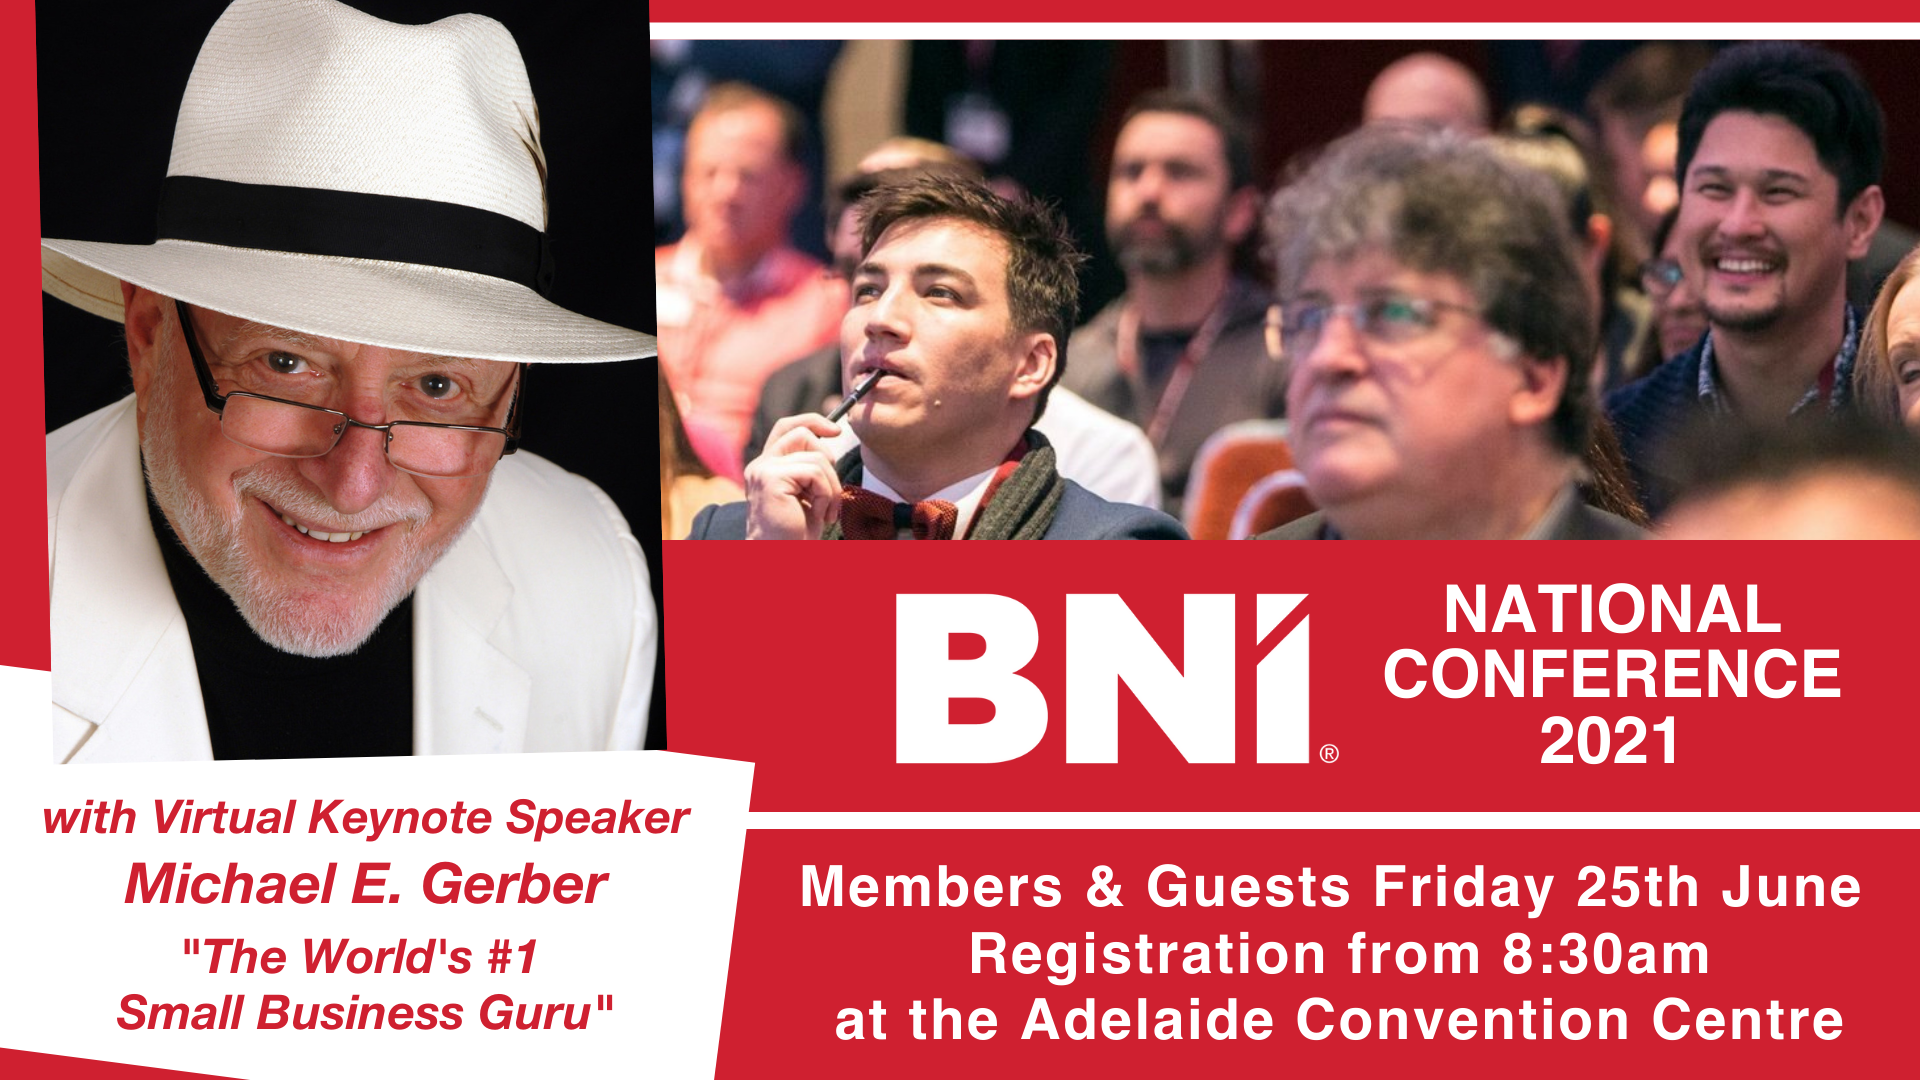 Experience Michael E Gerber at BNI Australia's National Conference!